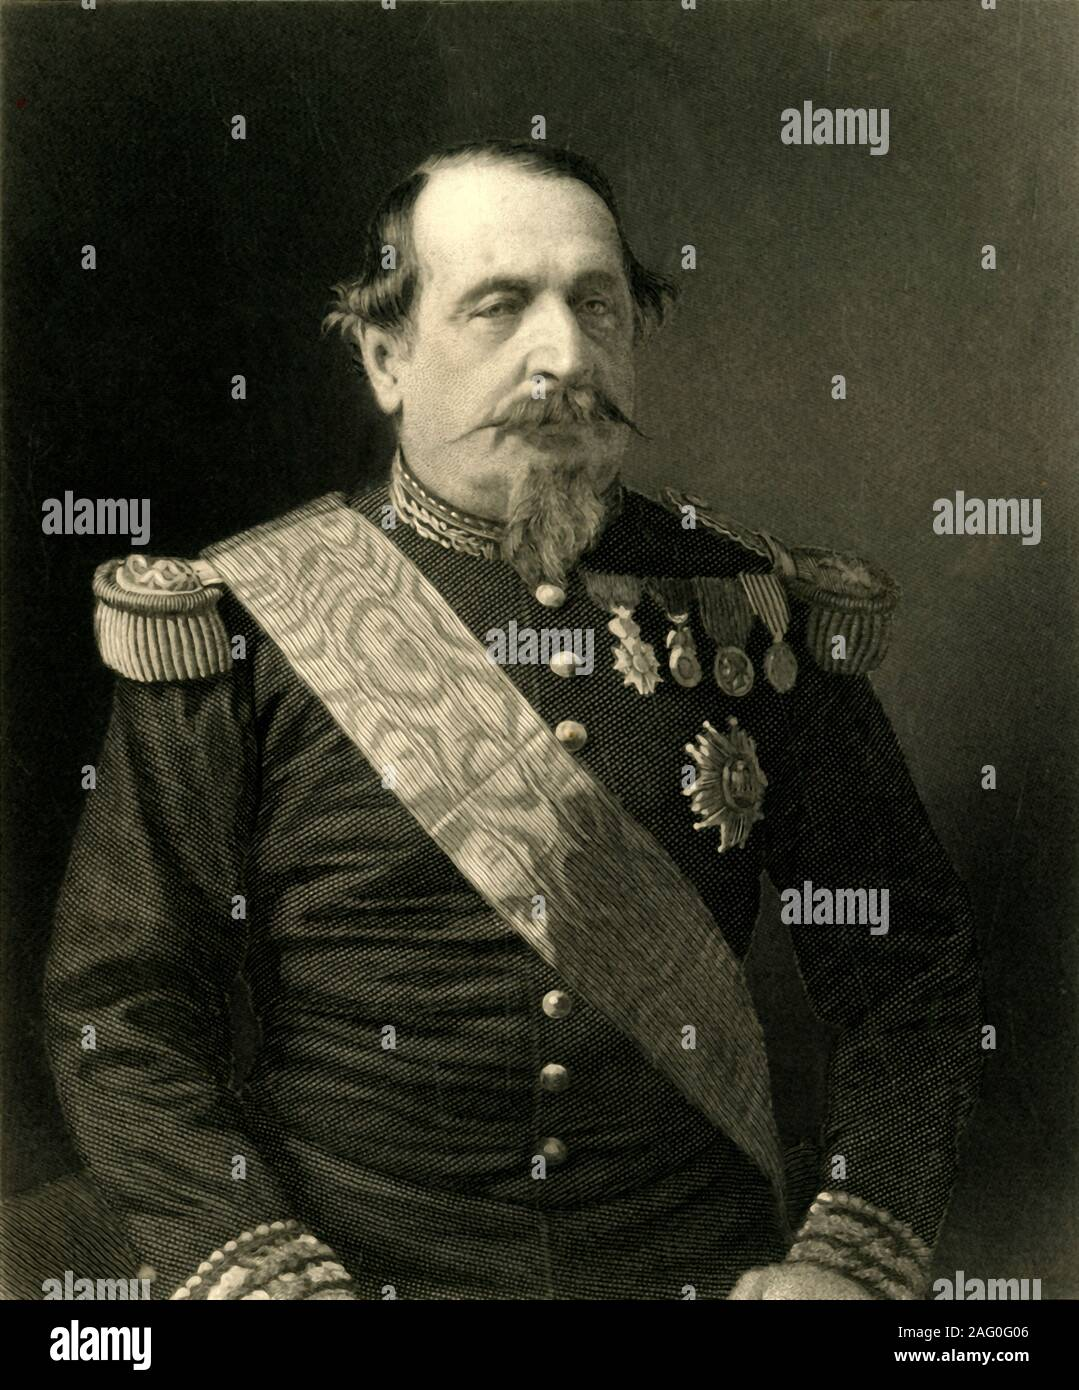 """'Napoleon III', c1872. Portrait of Napoleon (1808-1873), Emperor of France, in military uniform. From """"The Franco-Prussian War: its causes, incidents and consequences"""", Volume I, by Captain H M Hozier. [William Mackenzie, London, 1872] Stock Photo"""